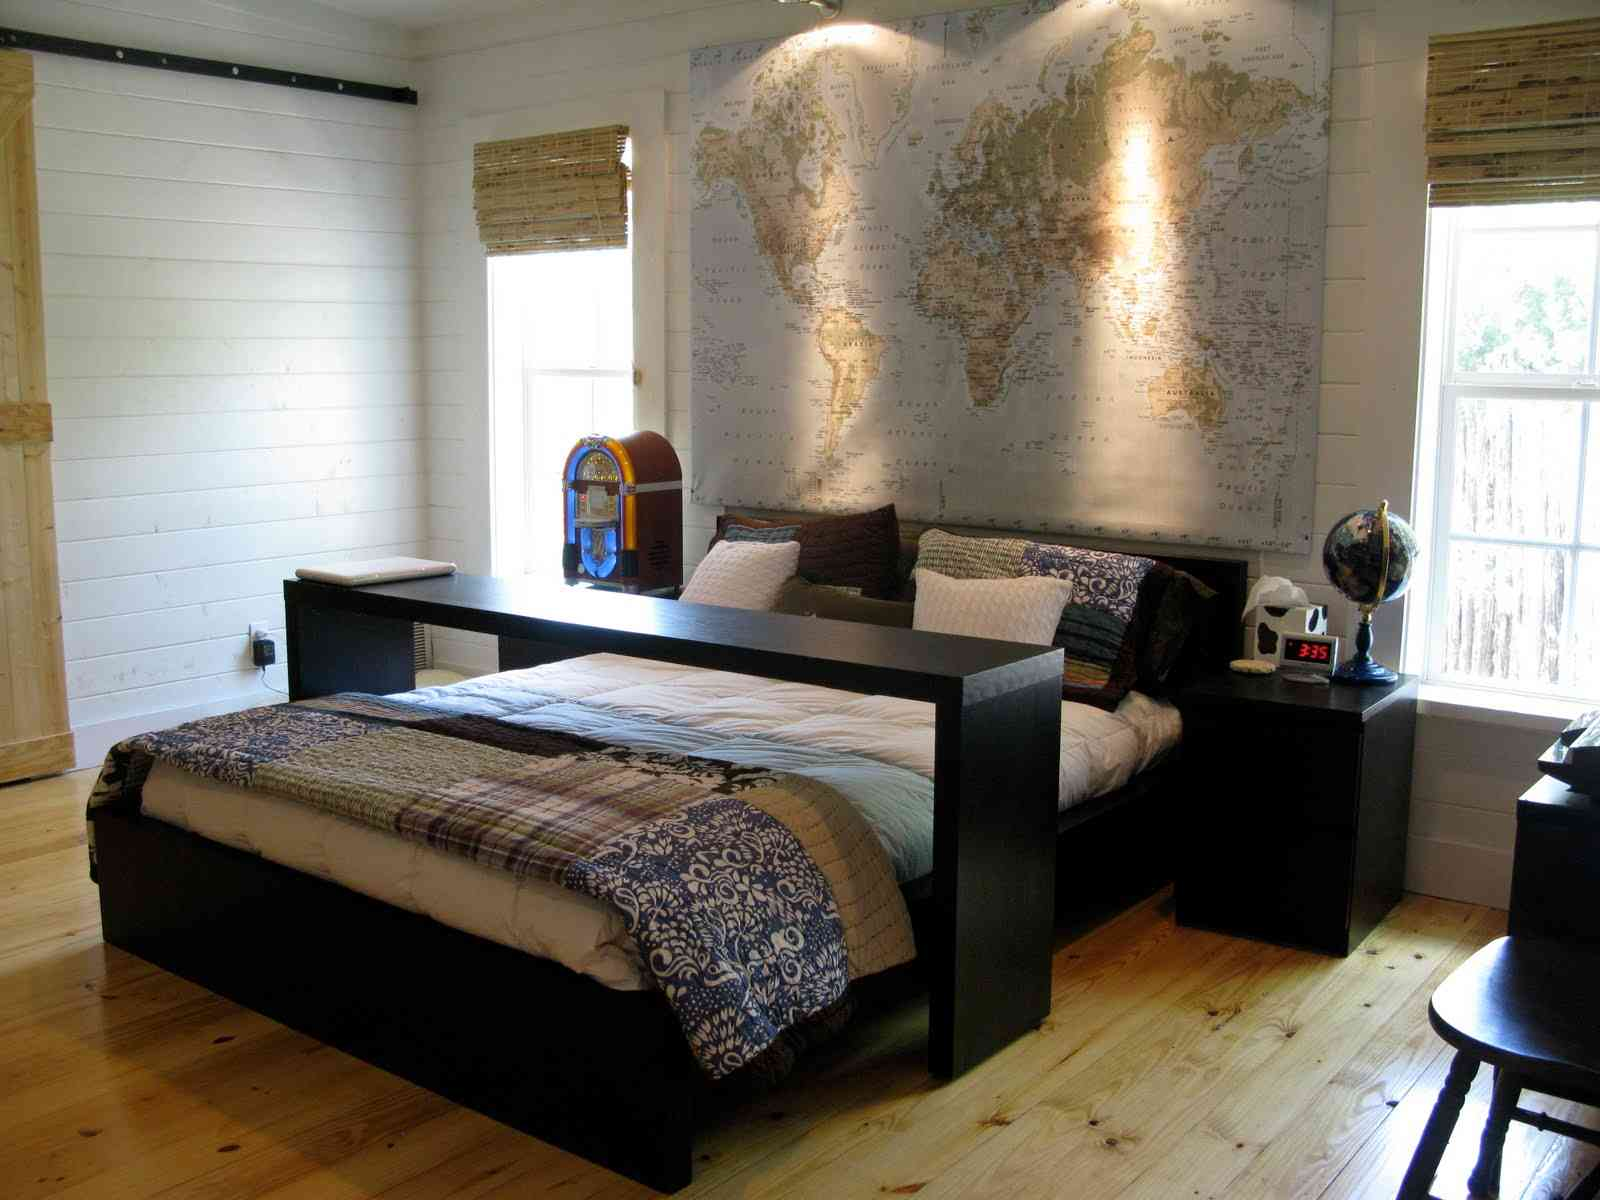 Bedroom furniture from ikea new bedroom 2015 room for Ikea room ideas 2015